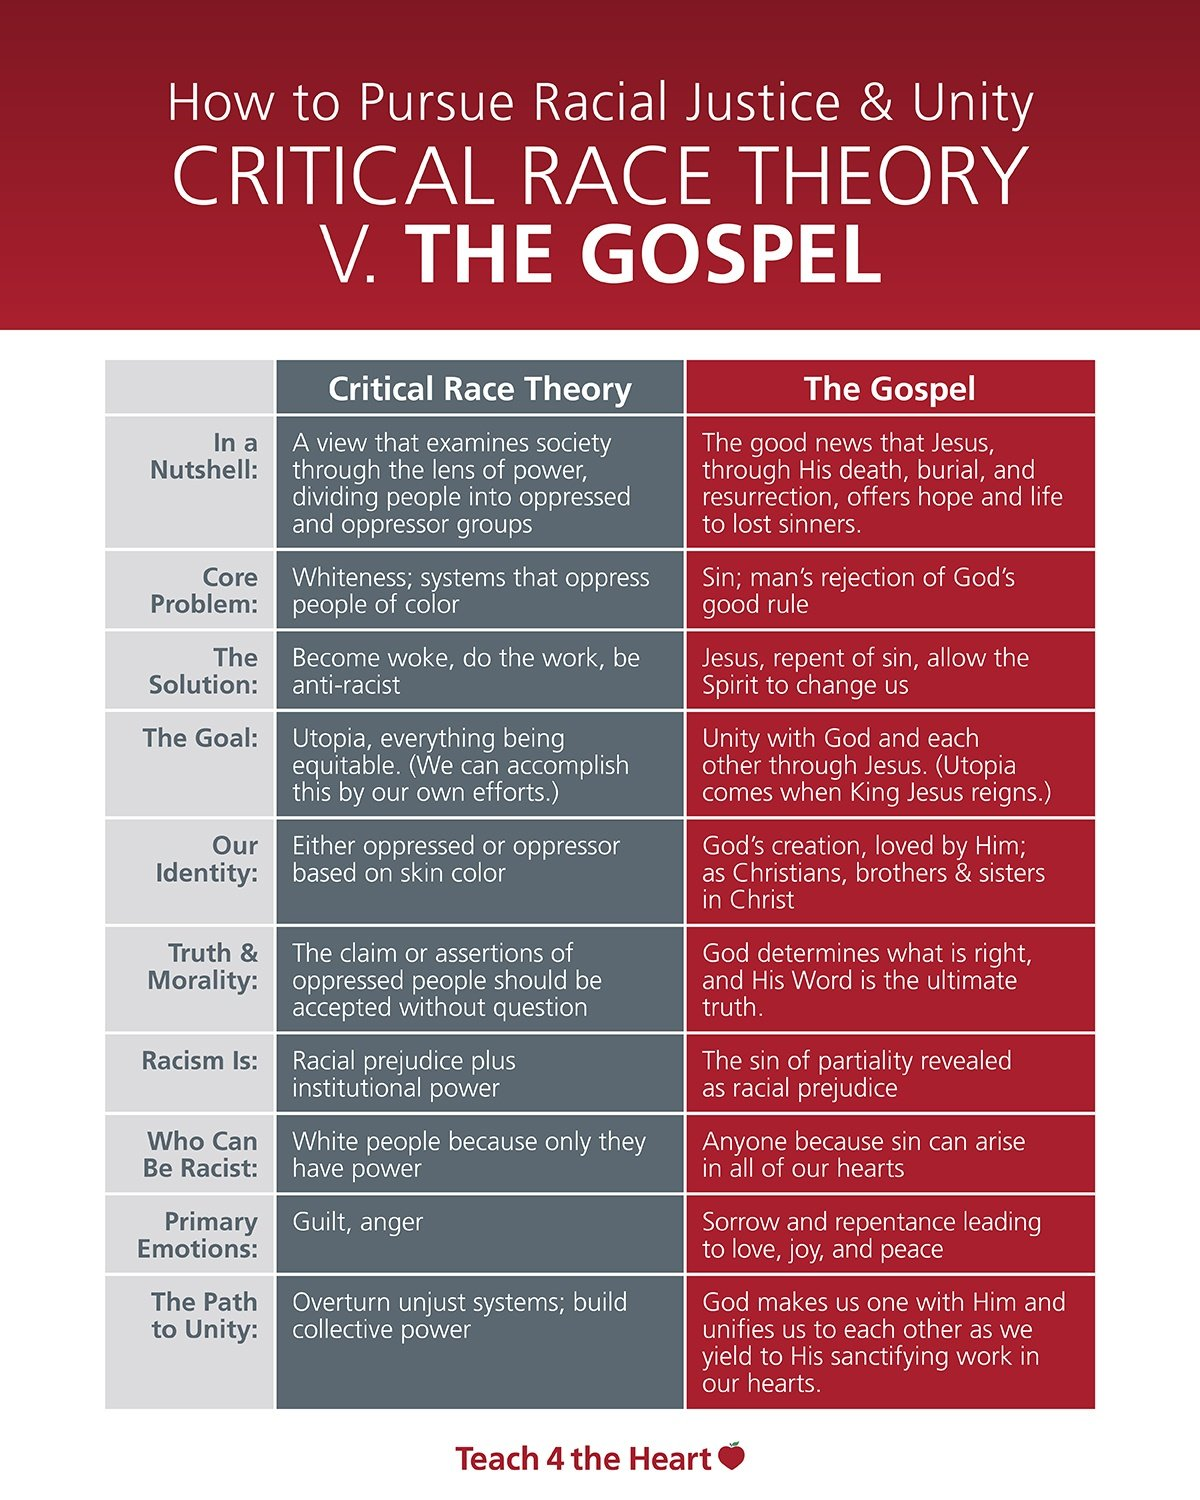 A comparison of the gospel and critical race theory